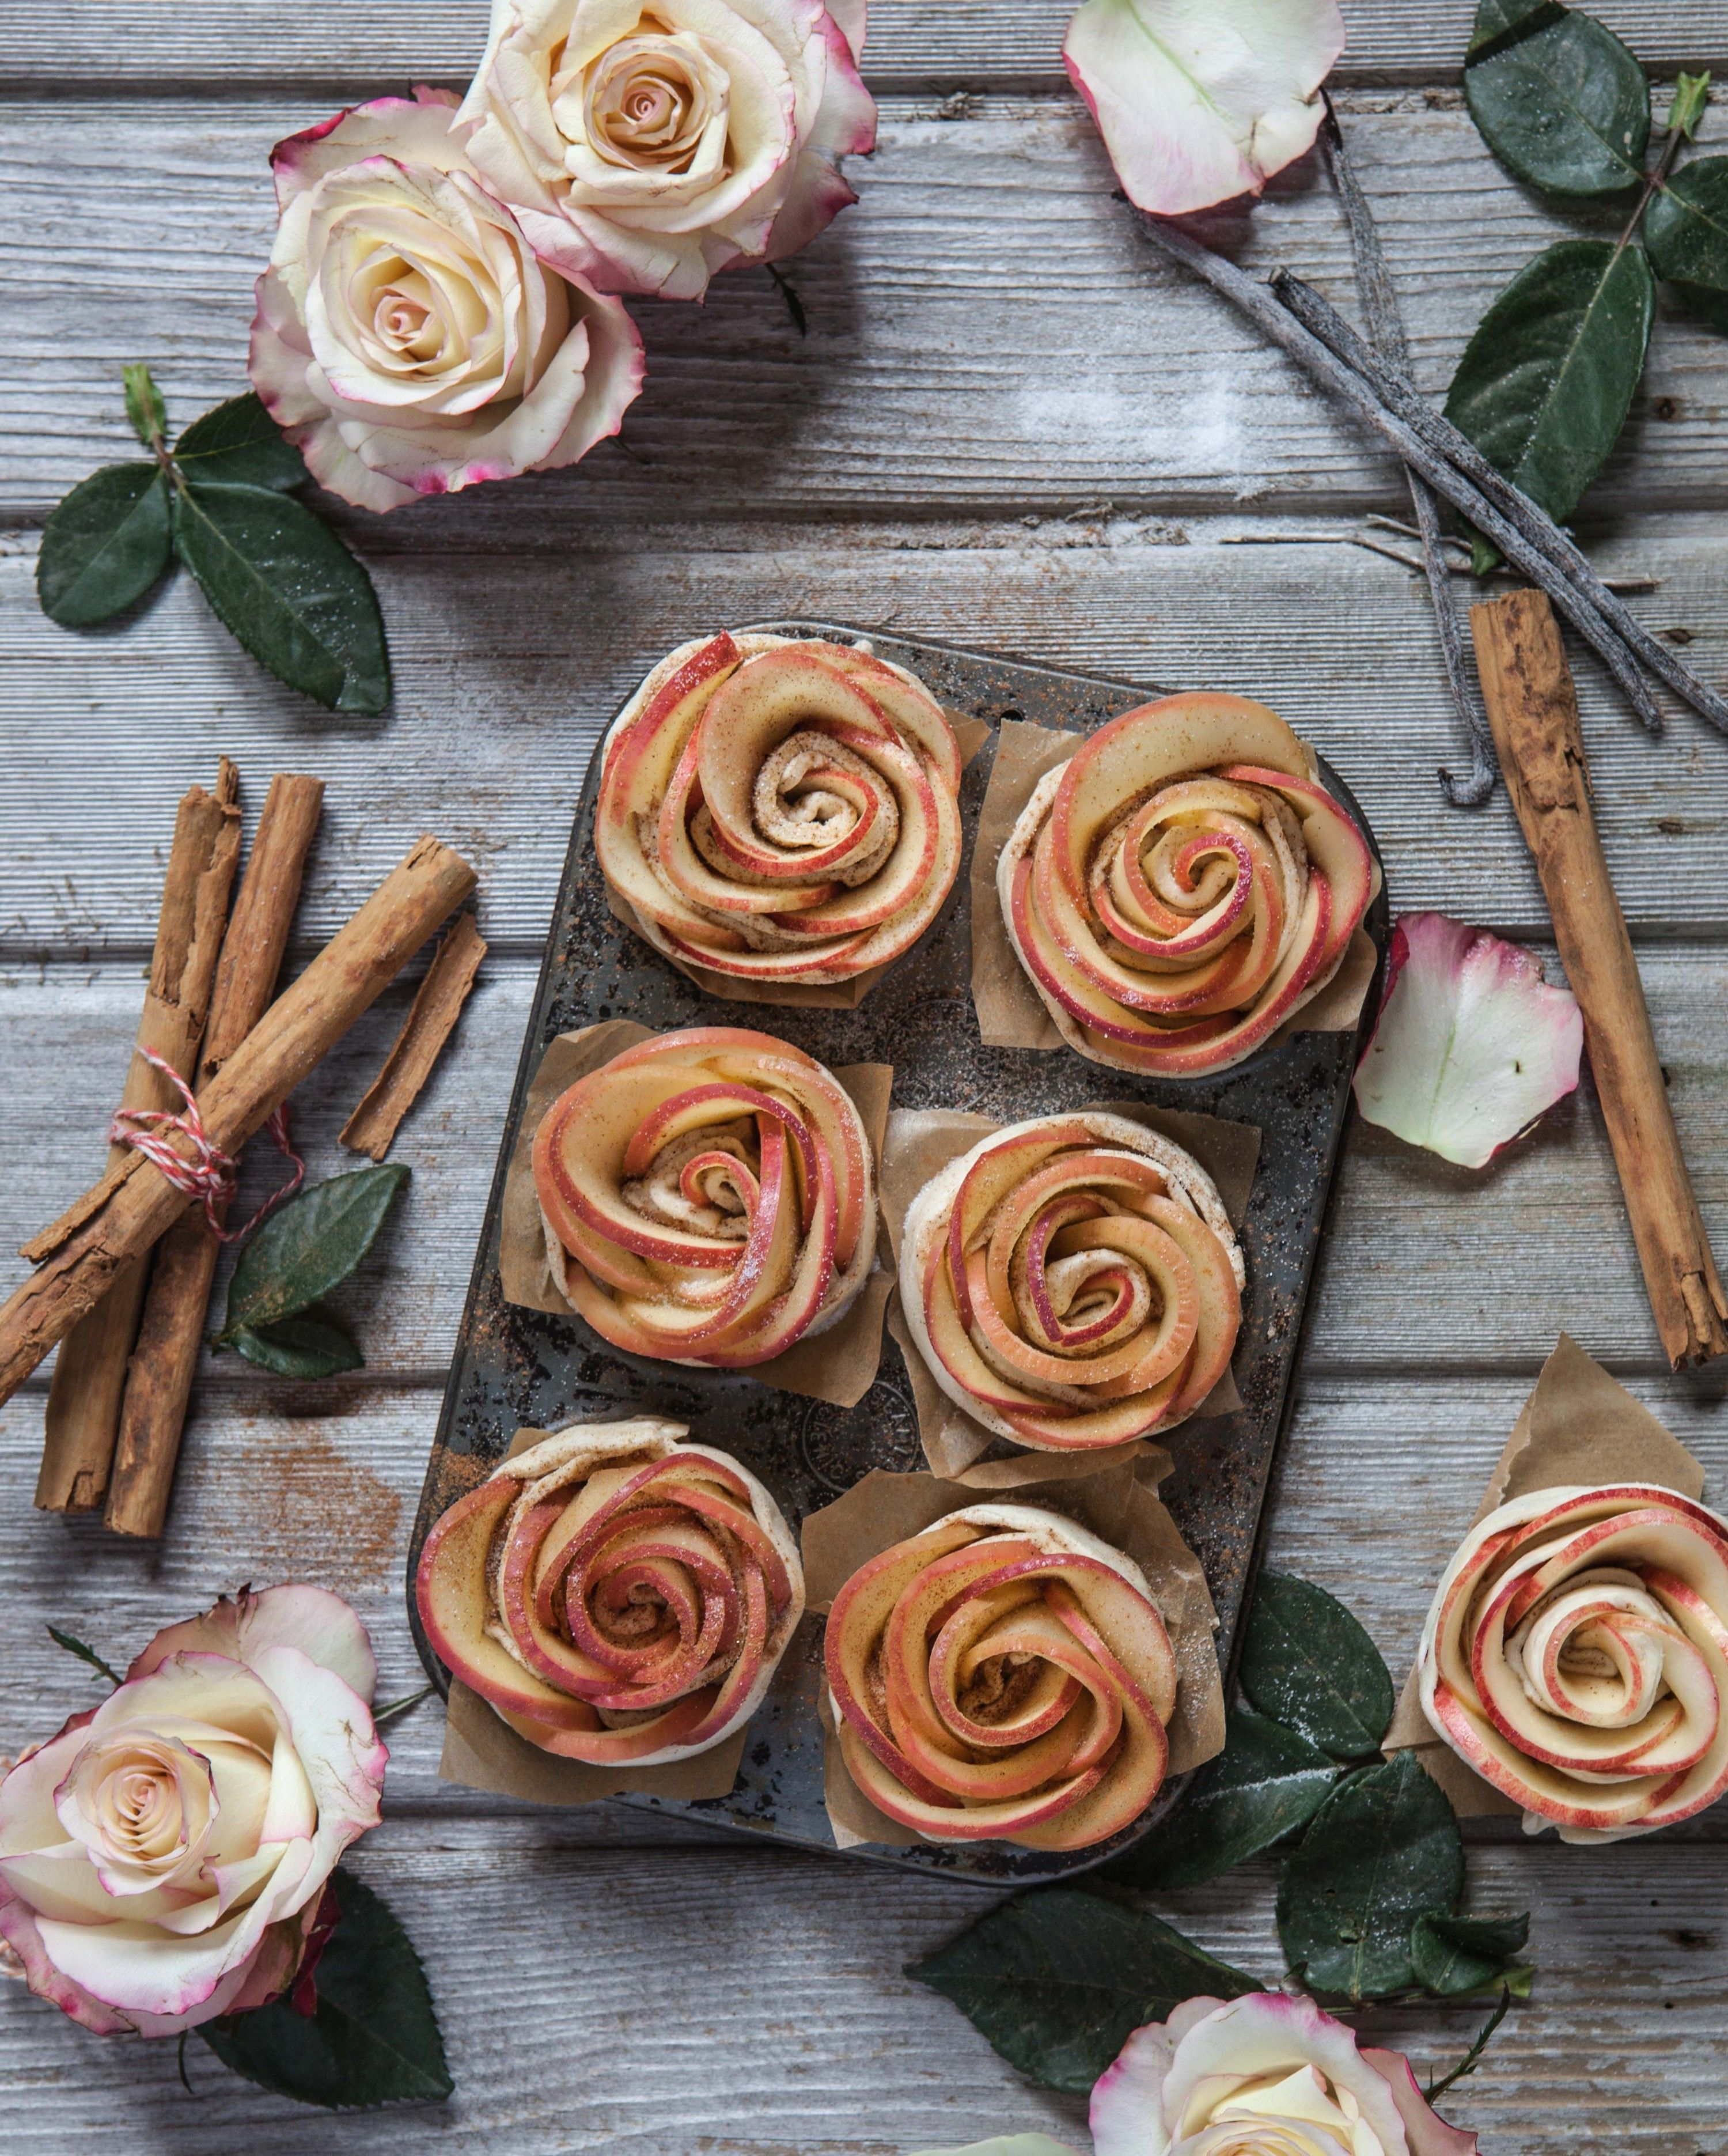 Pink Lady Apple Roses in Puff Pastry Recipe in 2020 Rose recipes, Puff pastry recipes, Apple